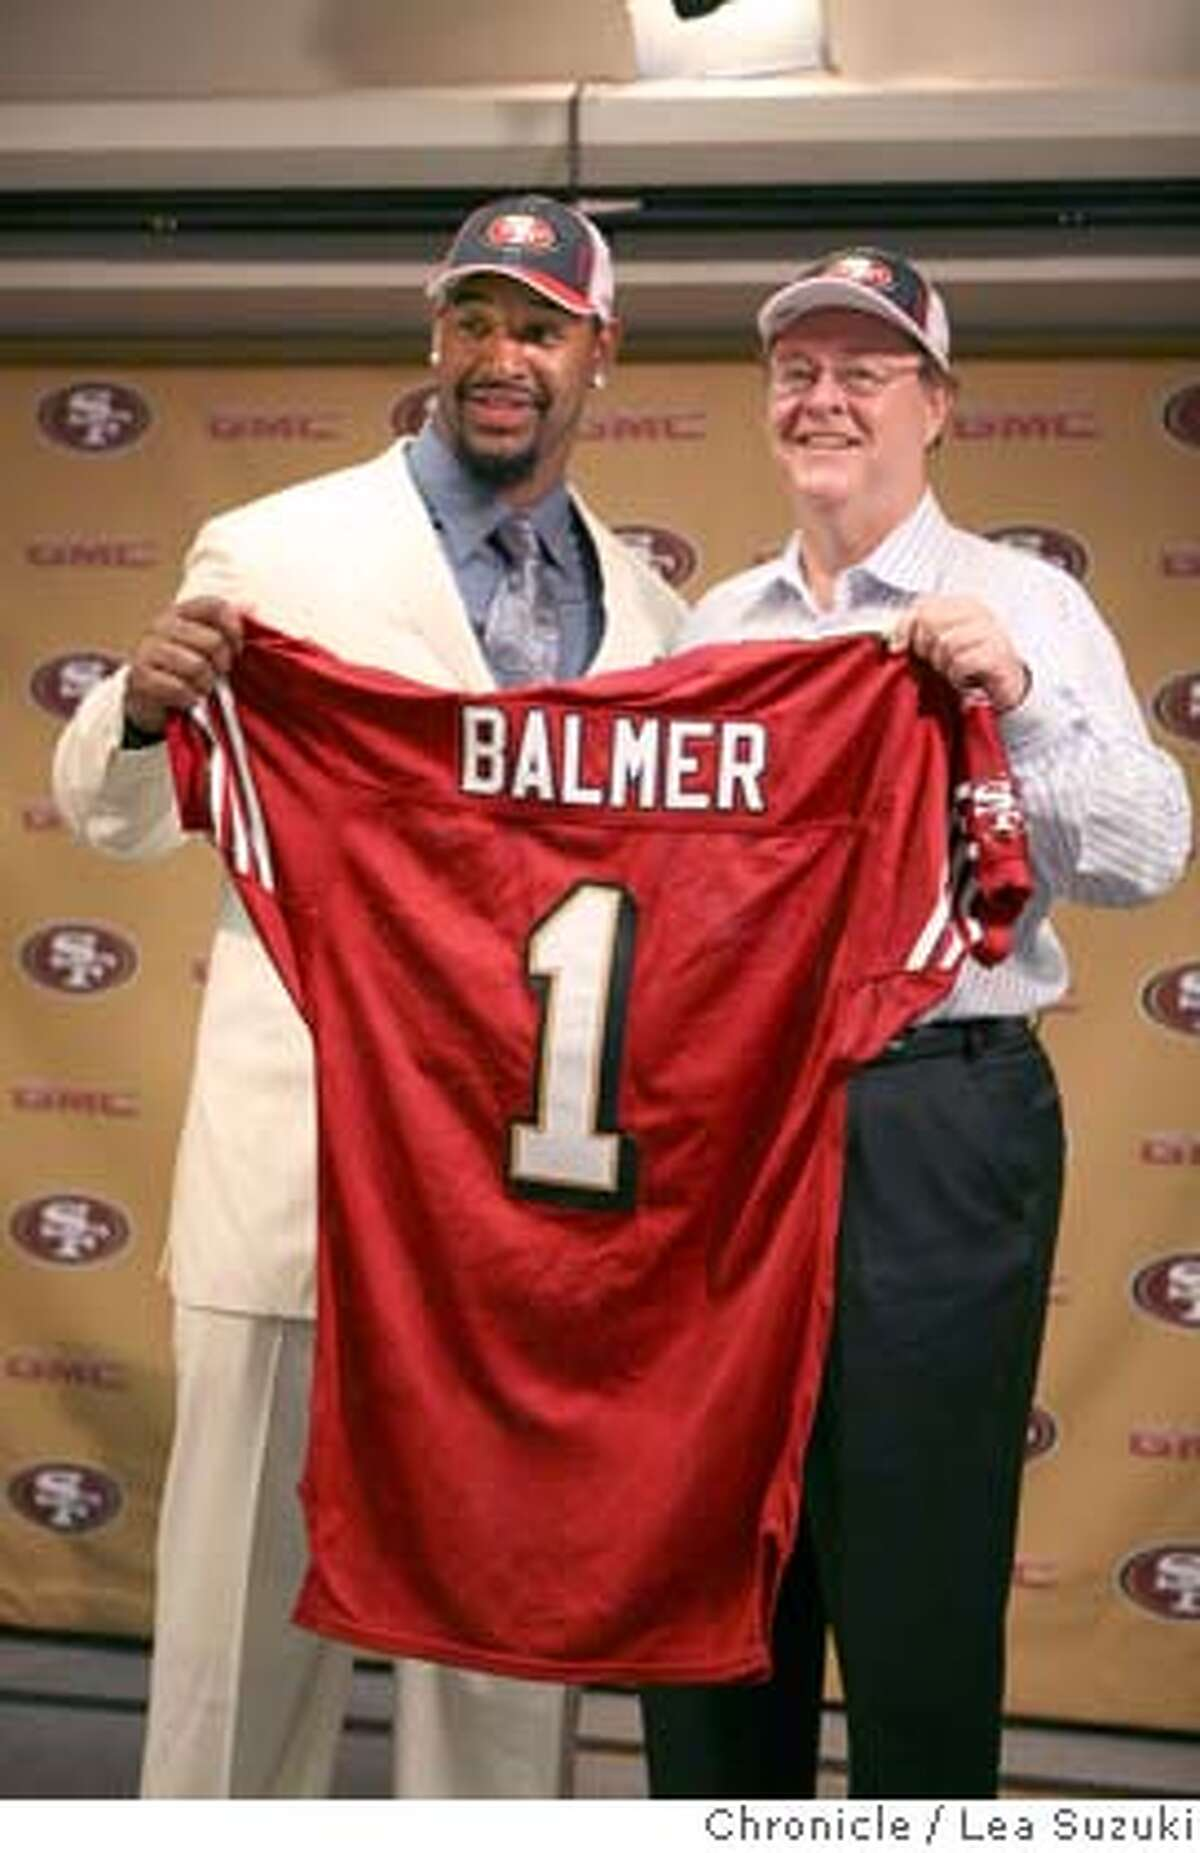 Kentwan Balmer and Owner John York (left to right) pose with a jersey at a news conference at 49er Headquarters on Monday, April 28, 2008 in Santa Clara, Calif. With their first pick in the draft, 29th overall, the San Francisco 49ers picked defensive tackle Kentwan Balmer of North Carolina on draft day. Photo By Lea Suzuki/ San Francisco Chronicle